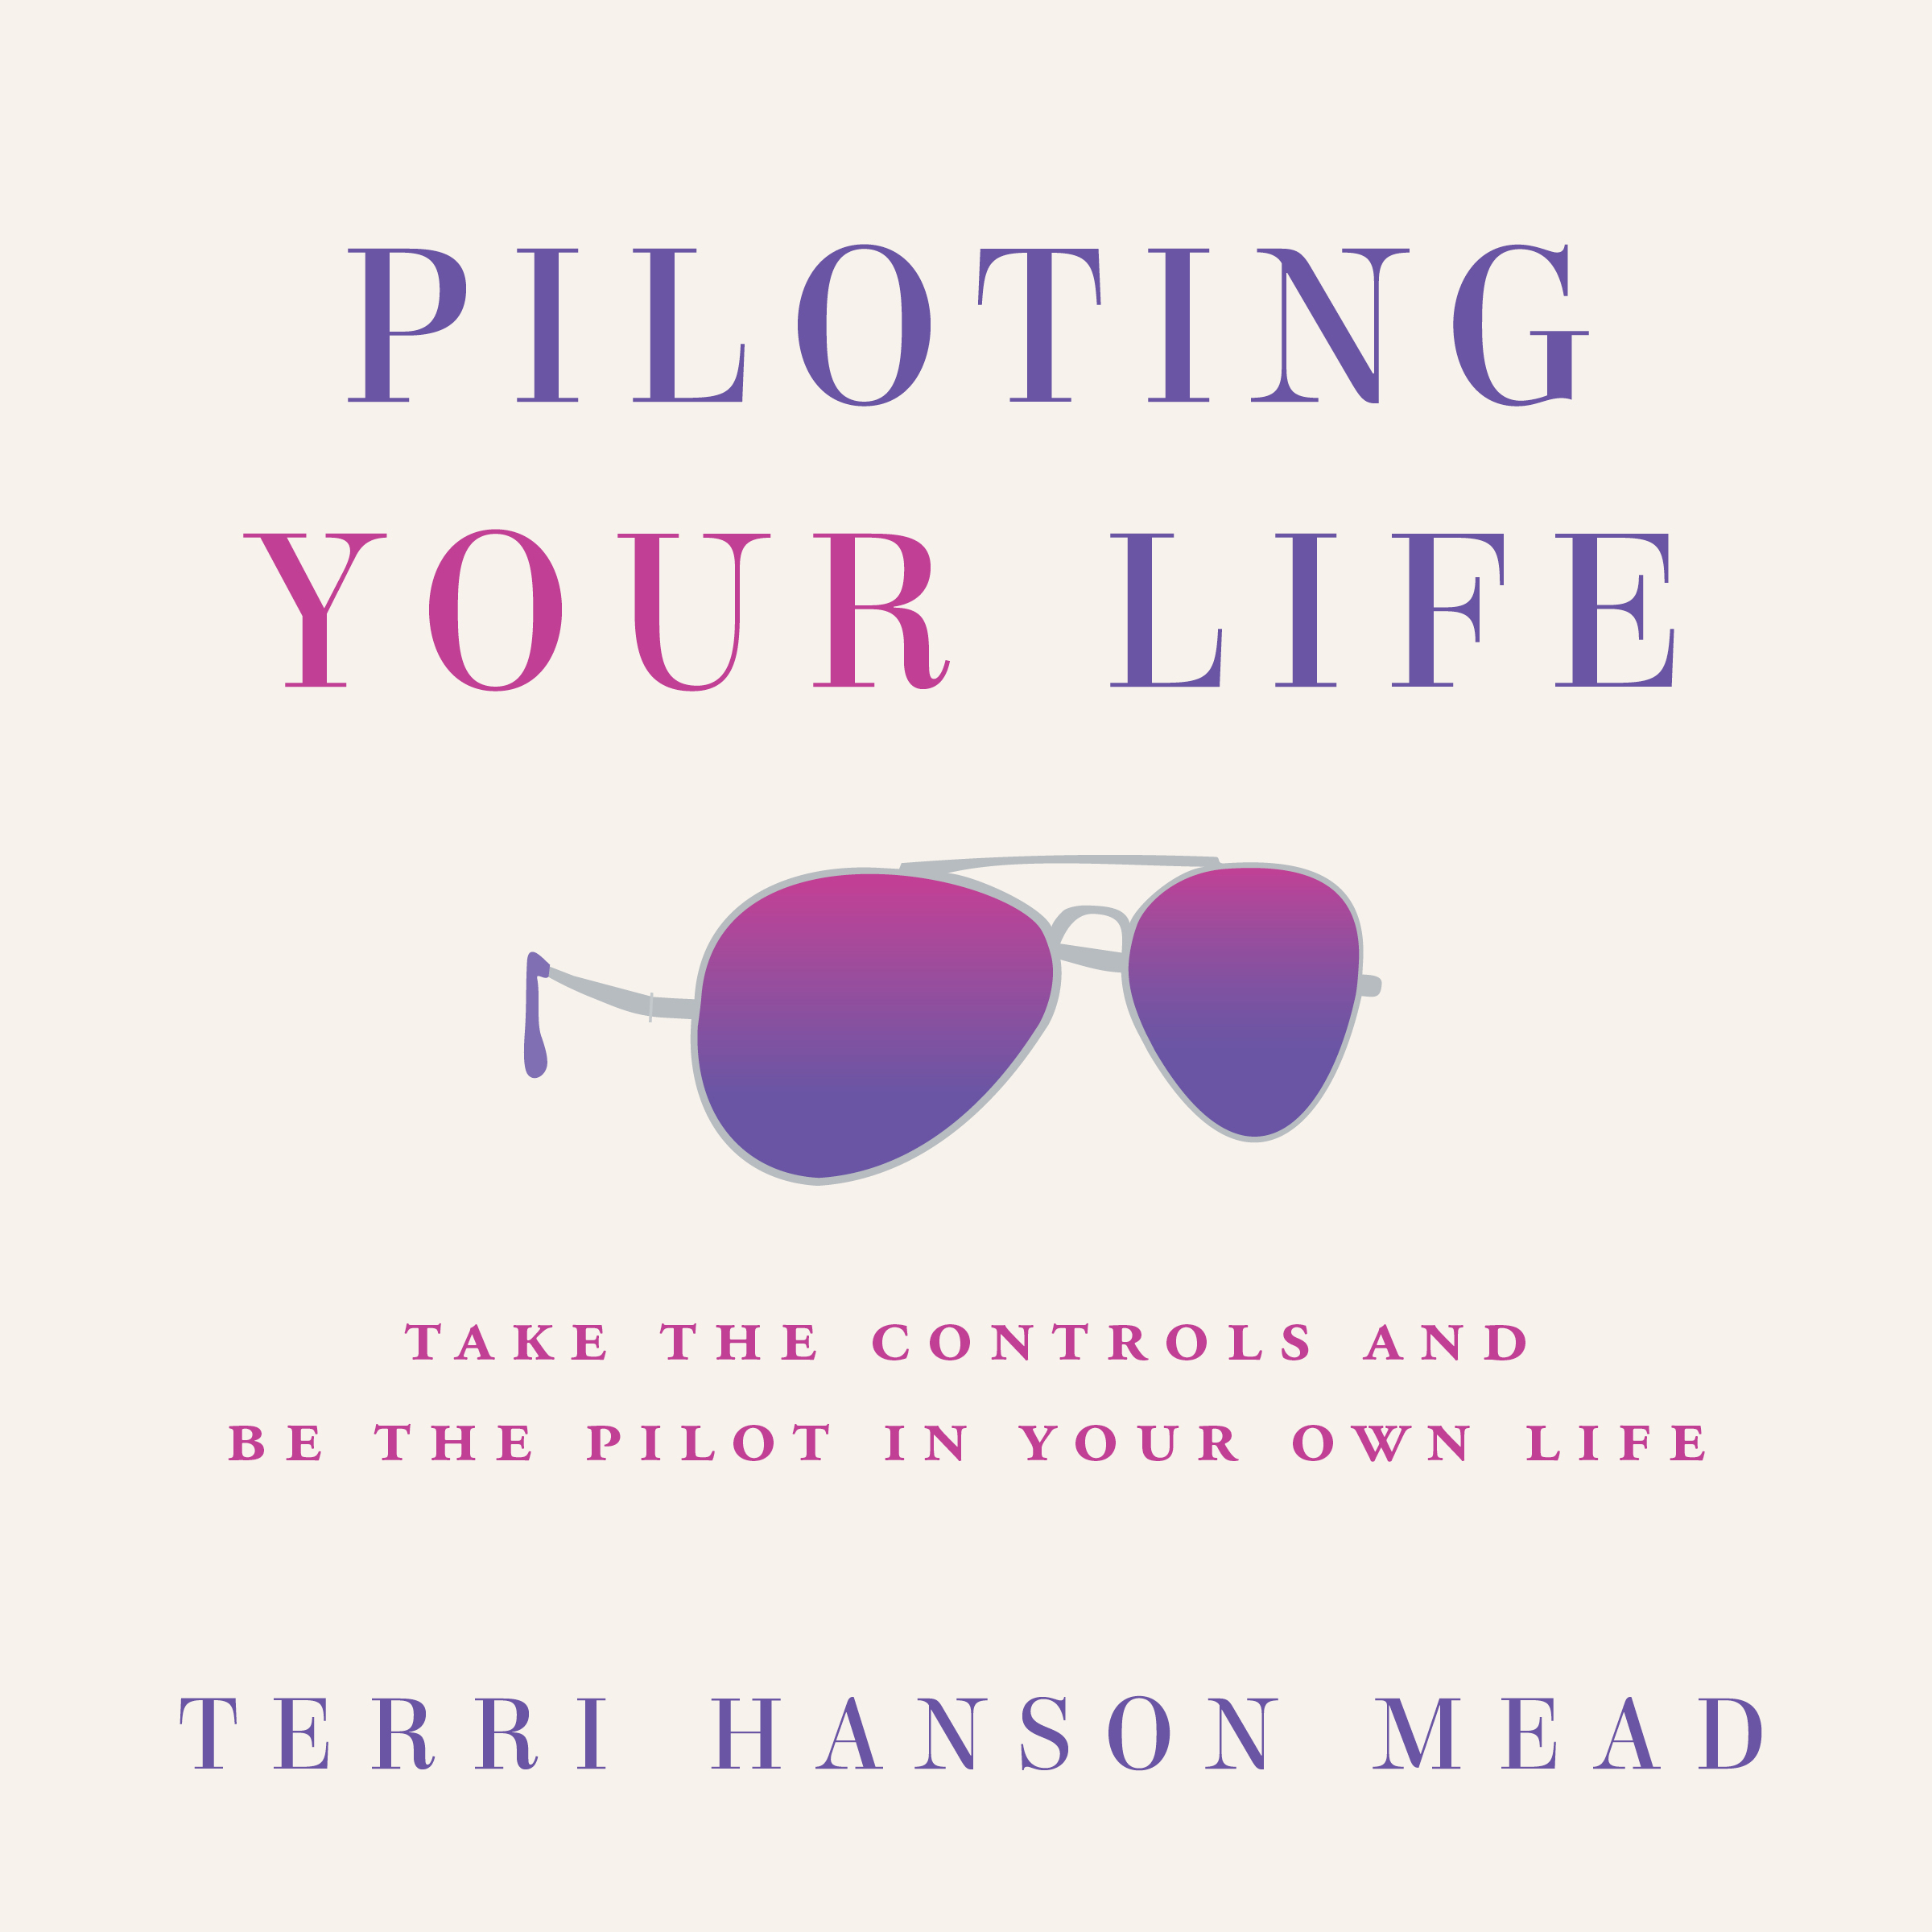 Piloting Your Life Audiobook Cover.jpg